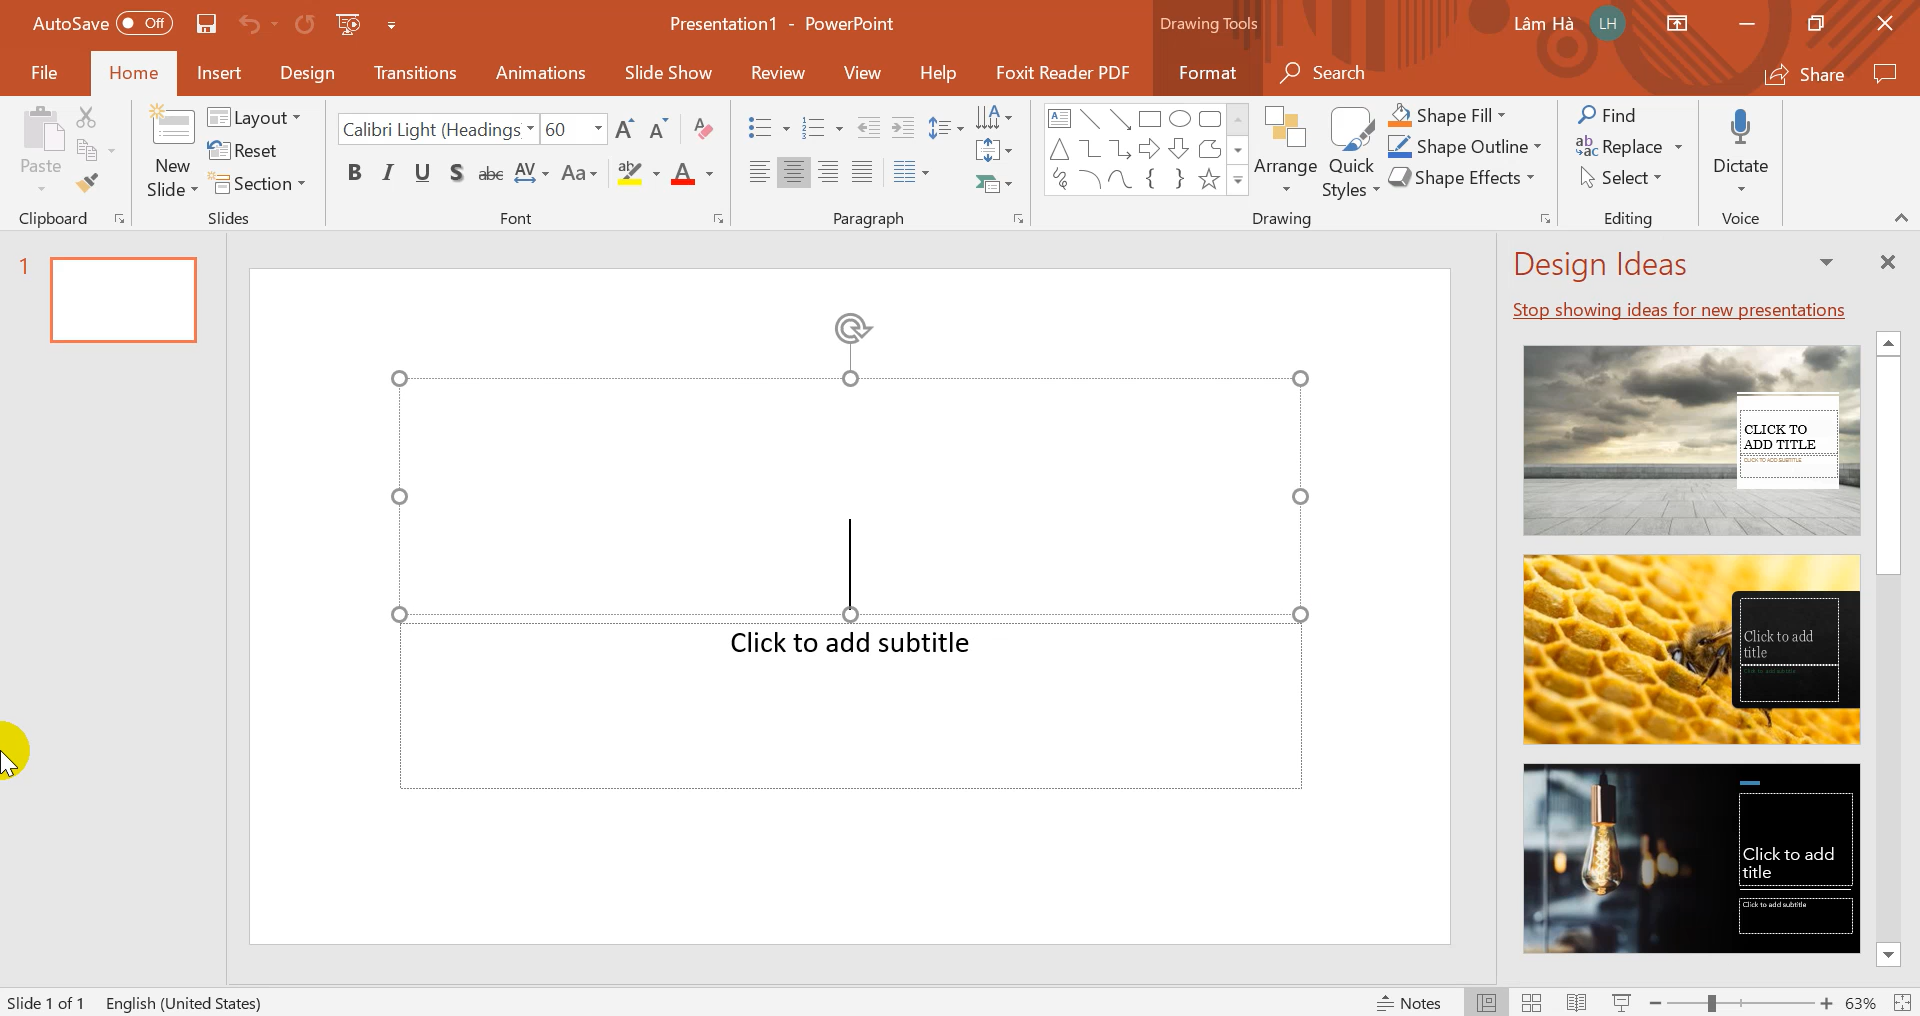 Giao diện PowerPoint 365